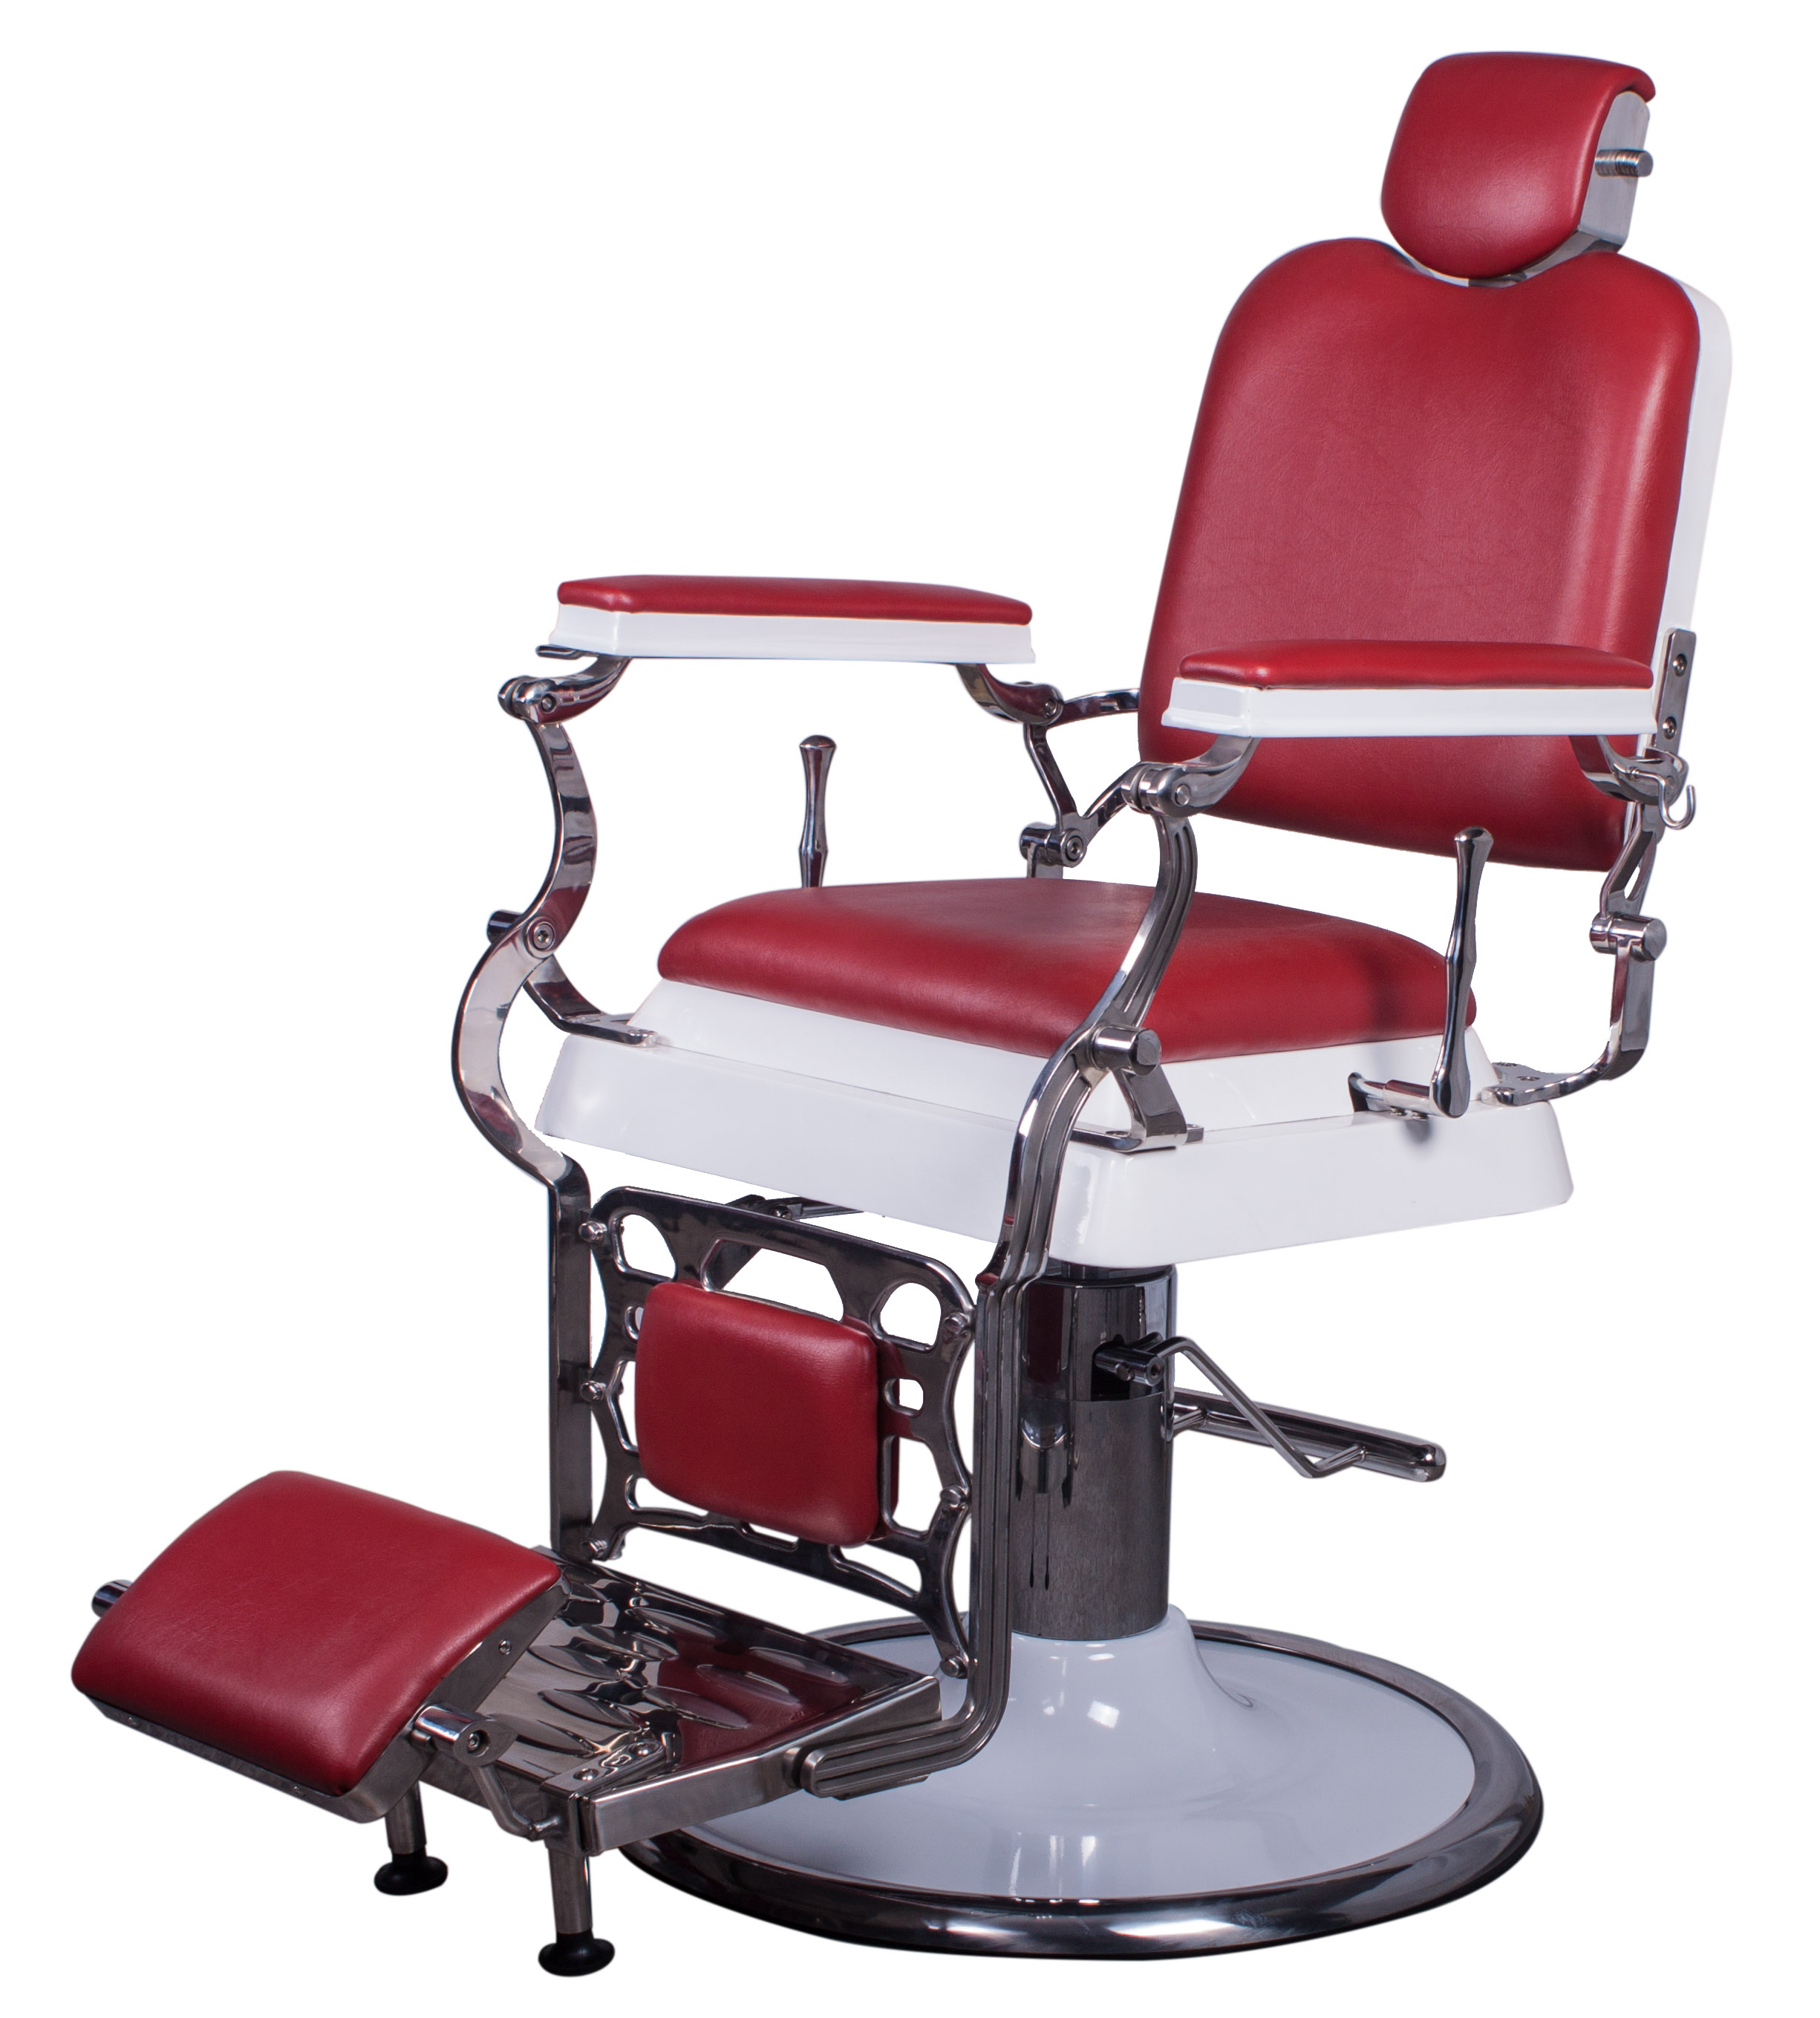 Cosmetology Chair Salon Equipment Toronto Products Salon Furniture Depot